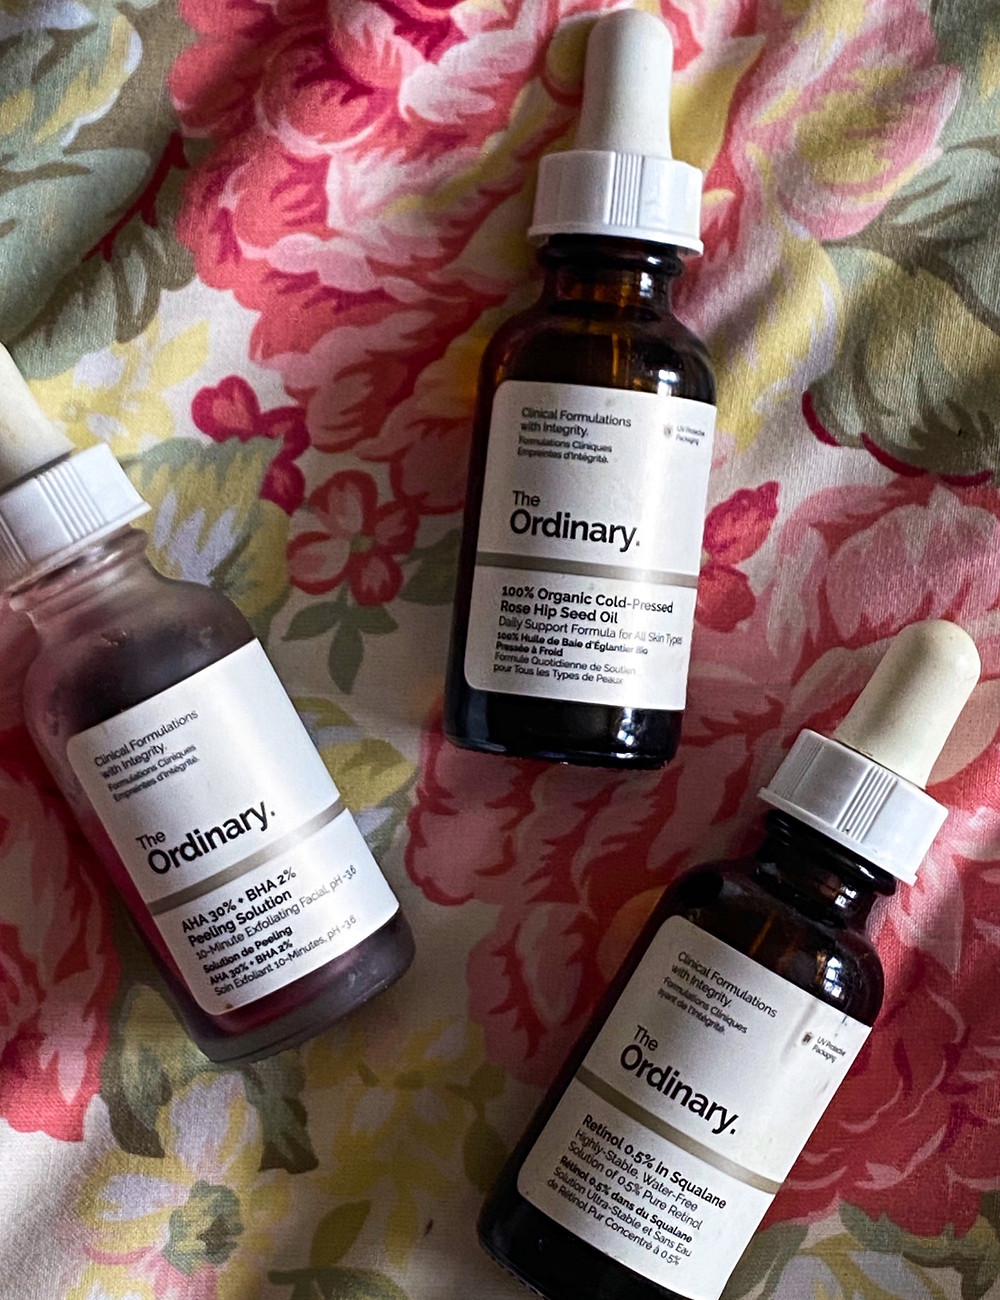 Three bottles of The Ordinary skincare